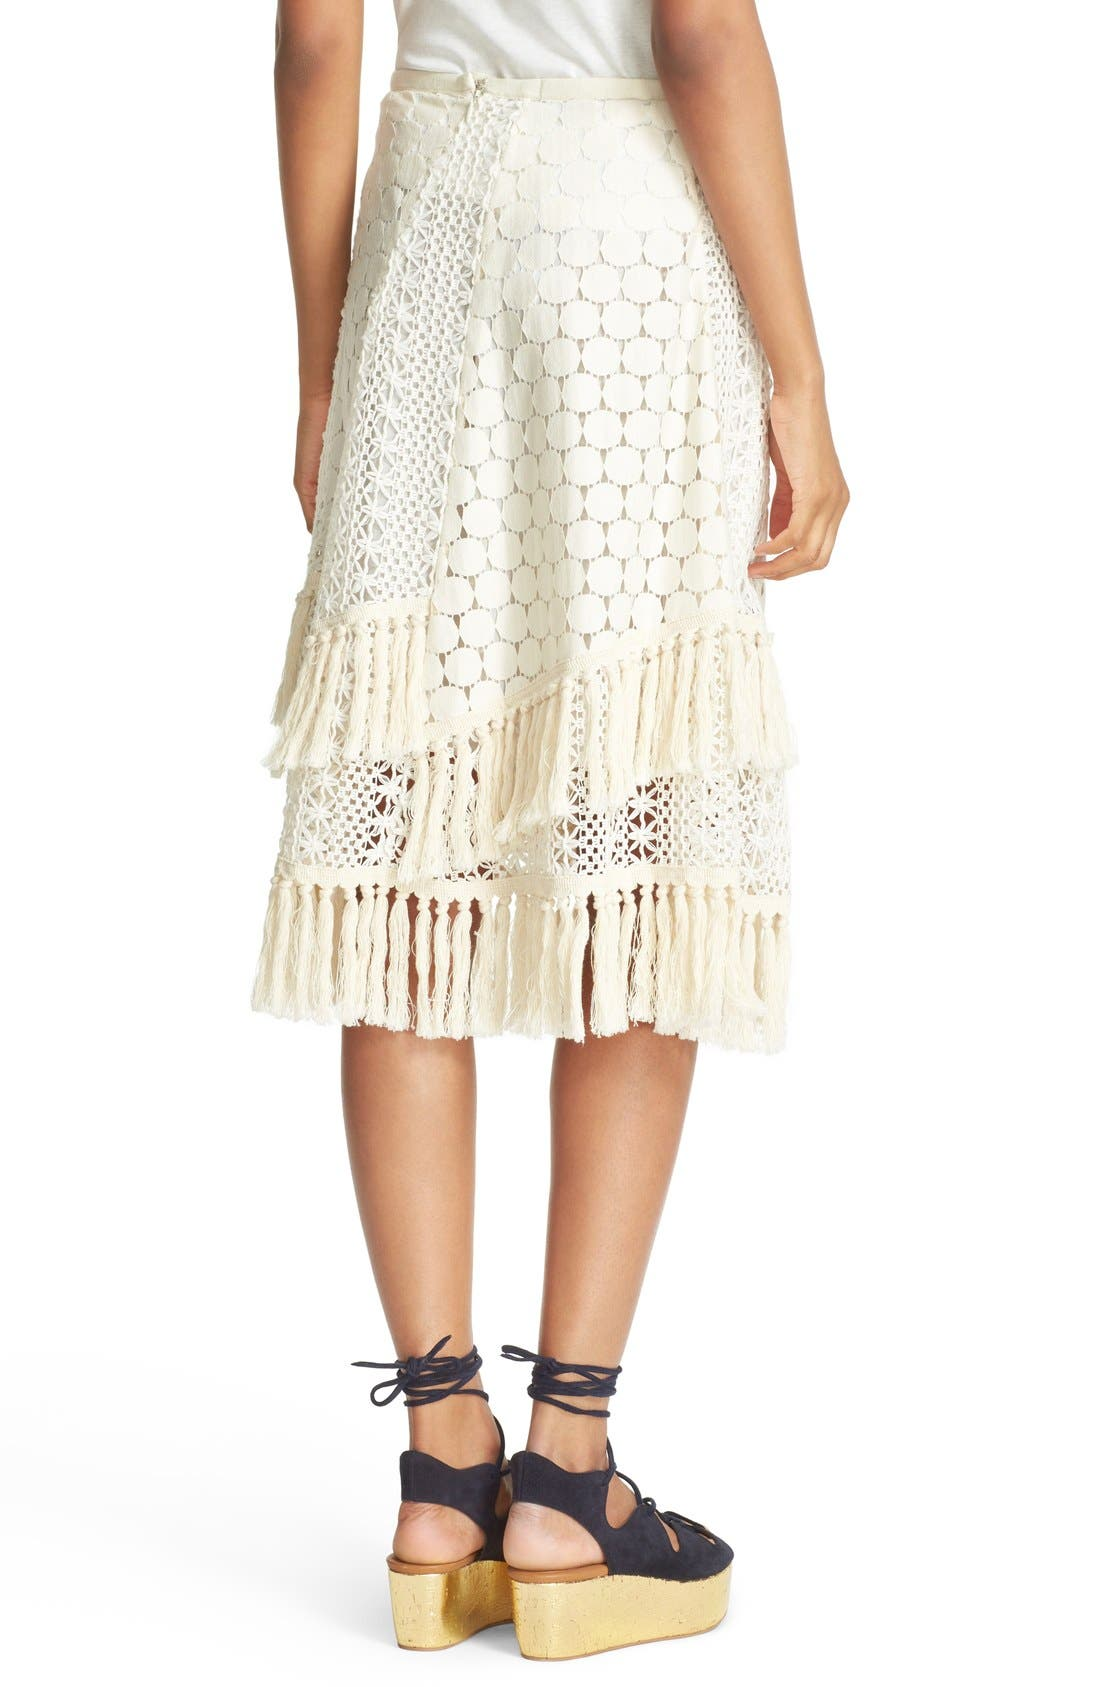 SEE BY CHLOÉ,                             Lace & Fringe Skirt,                             Alternate thumbnail 3, color,                             900